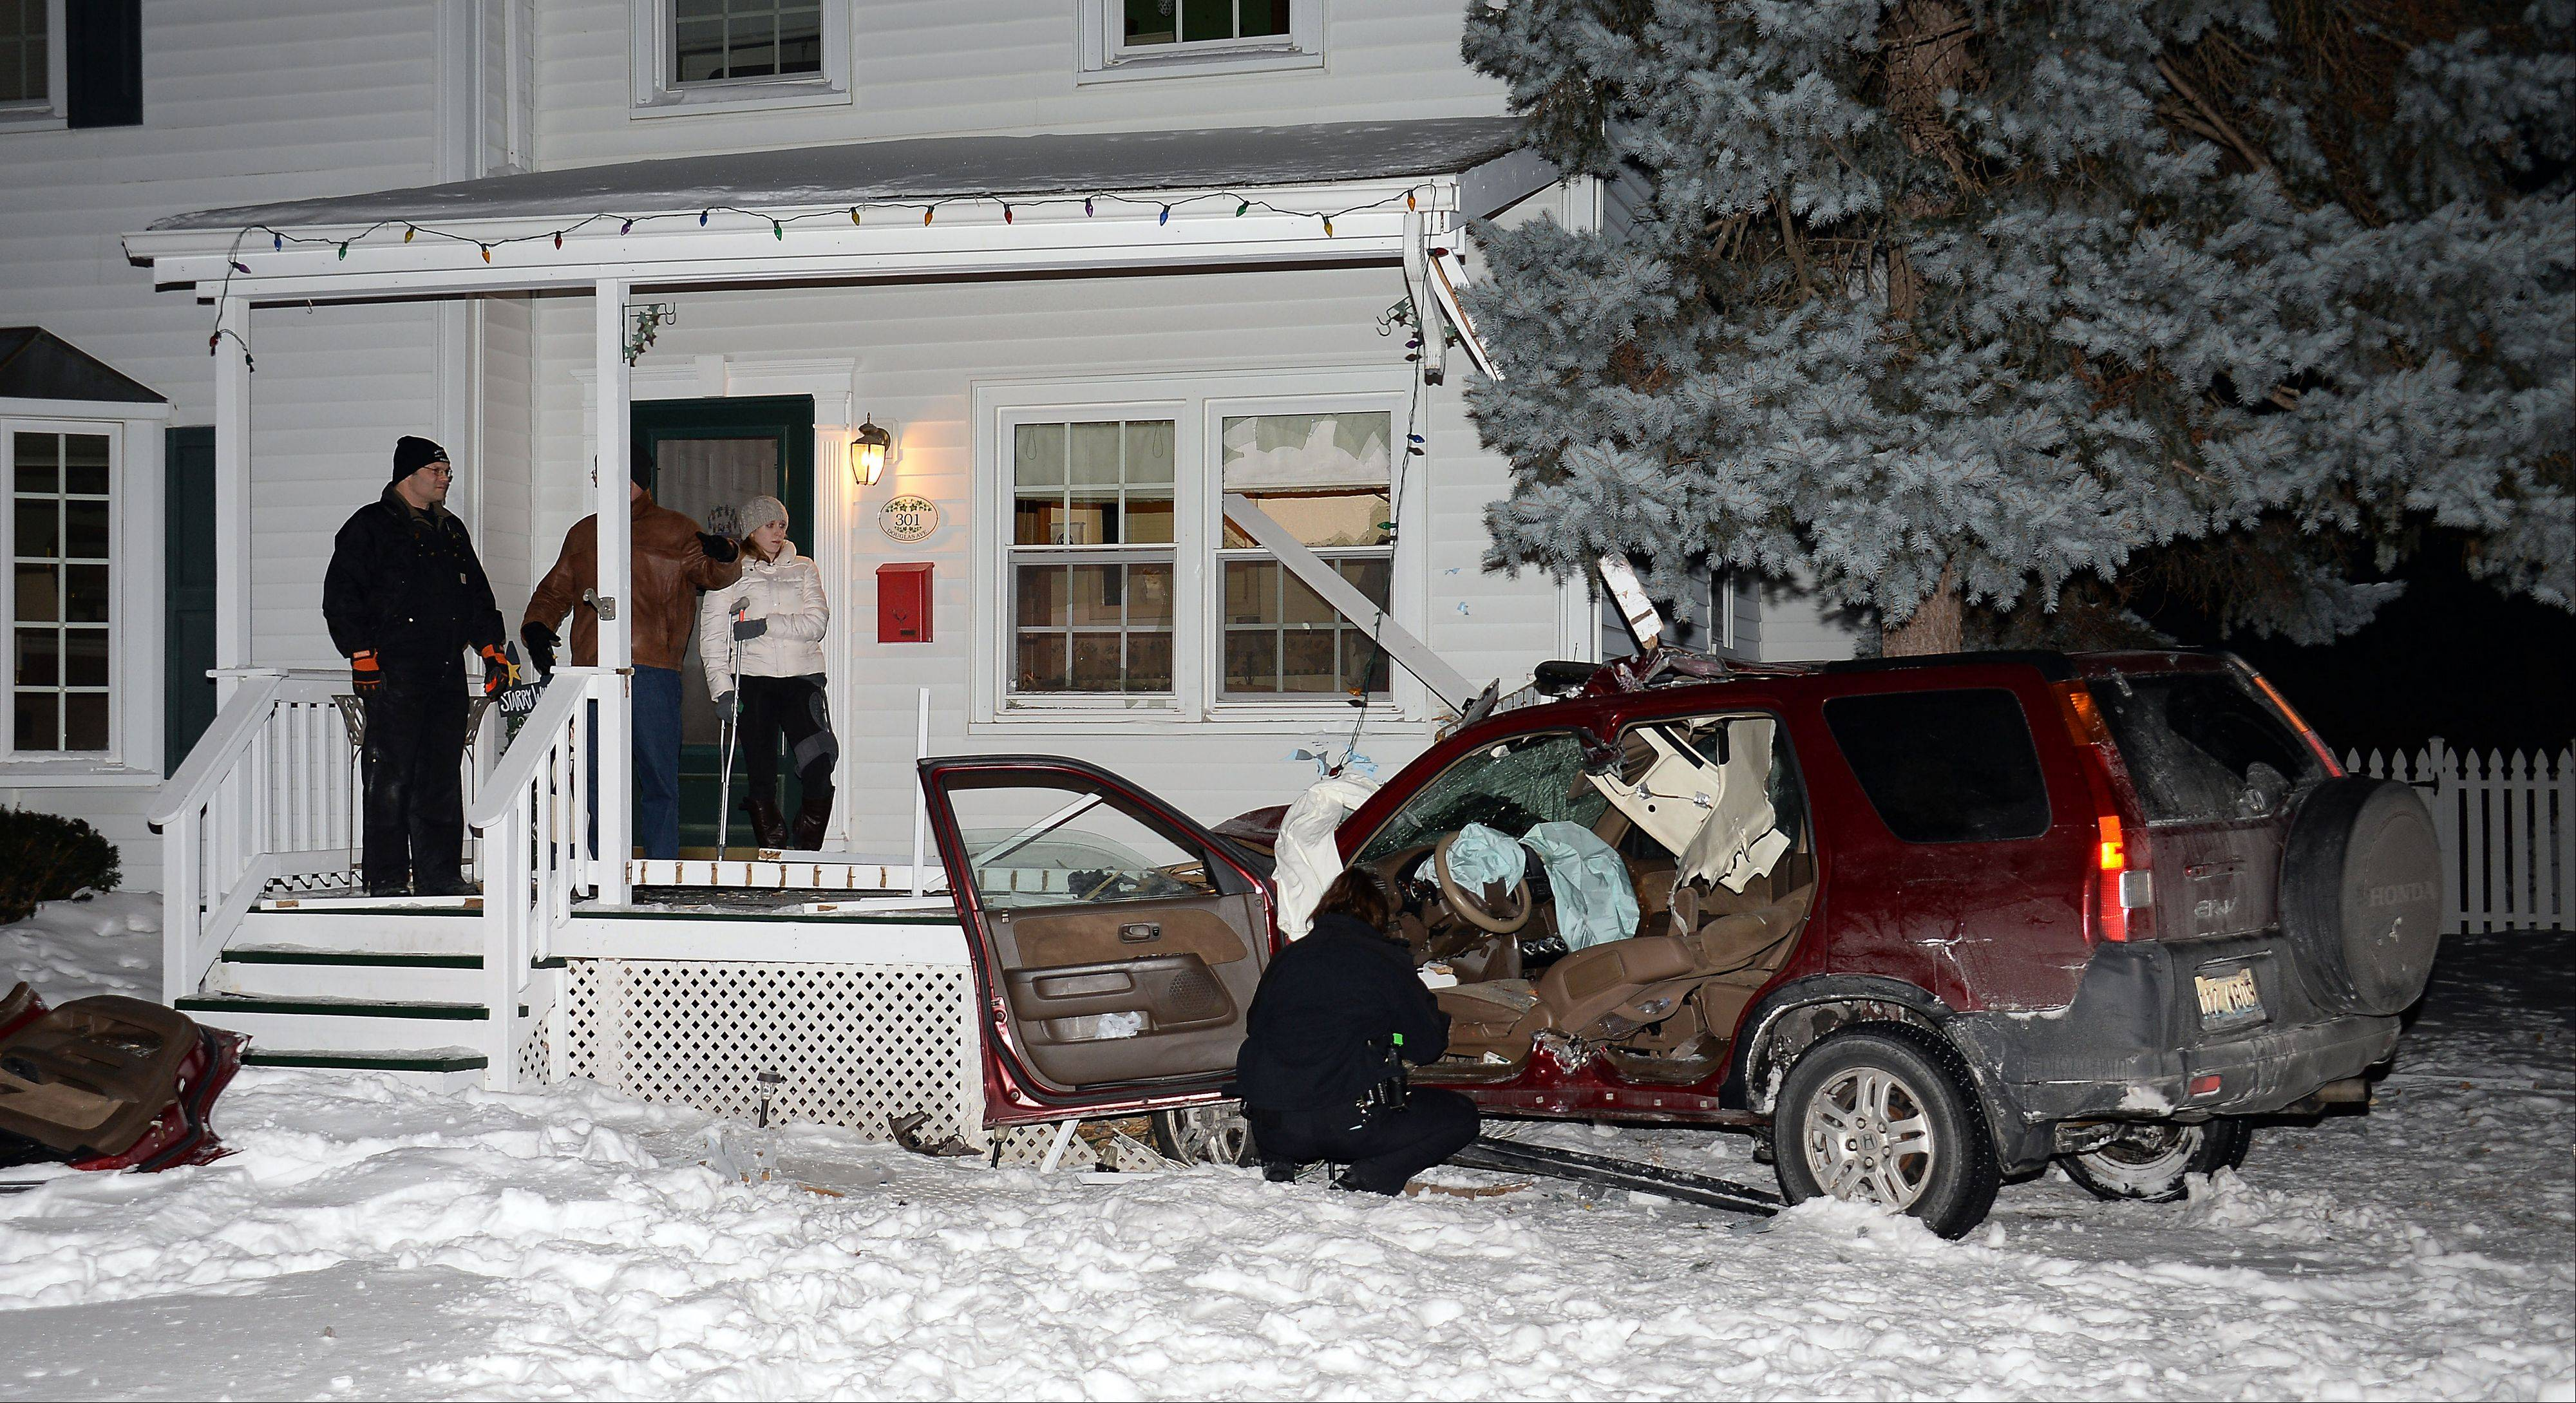 Arlington Heights police investigate the scene of a SUV crash into a house that occurred about 8 p.m. Thursday.